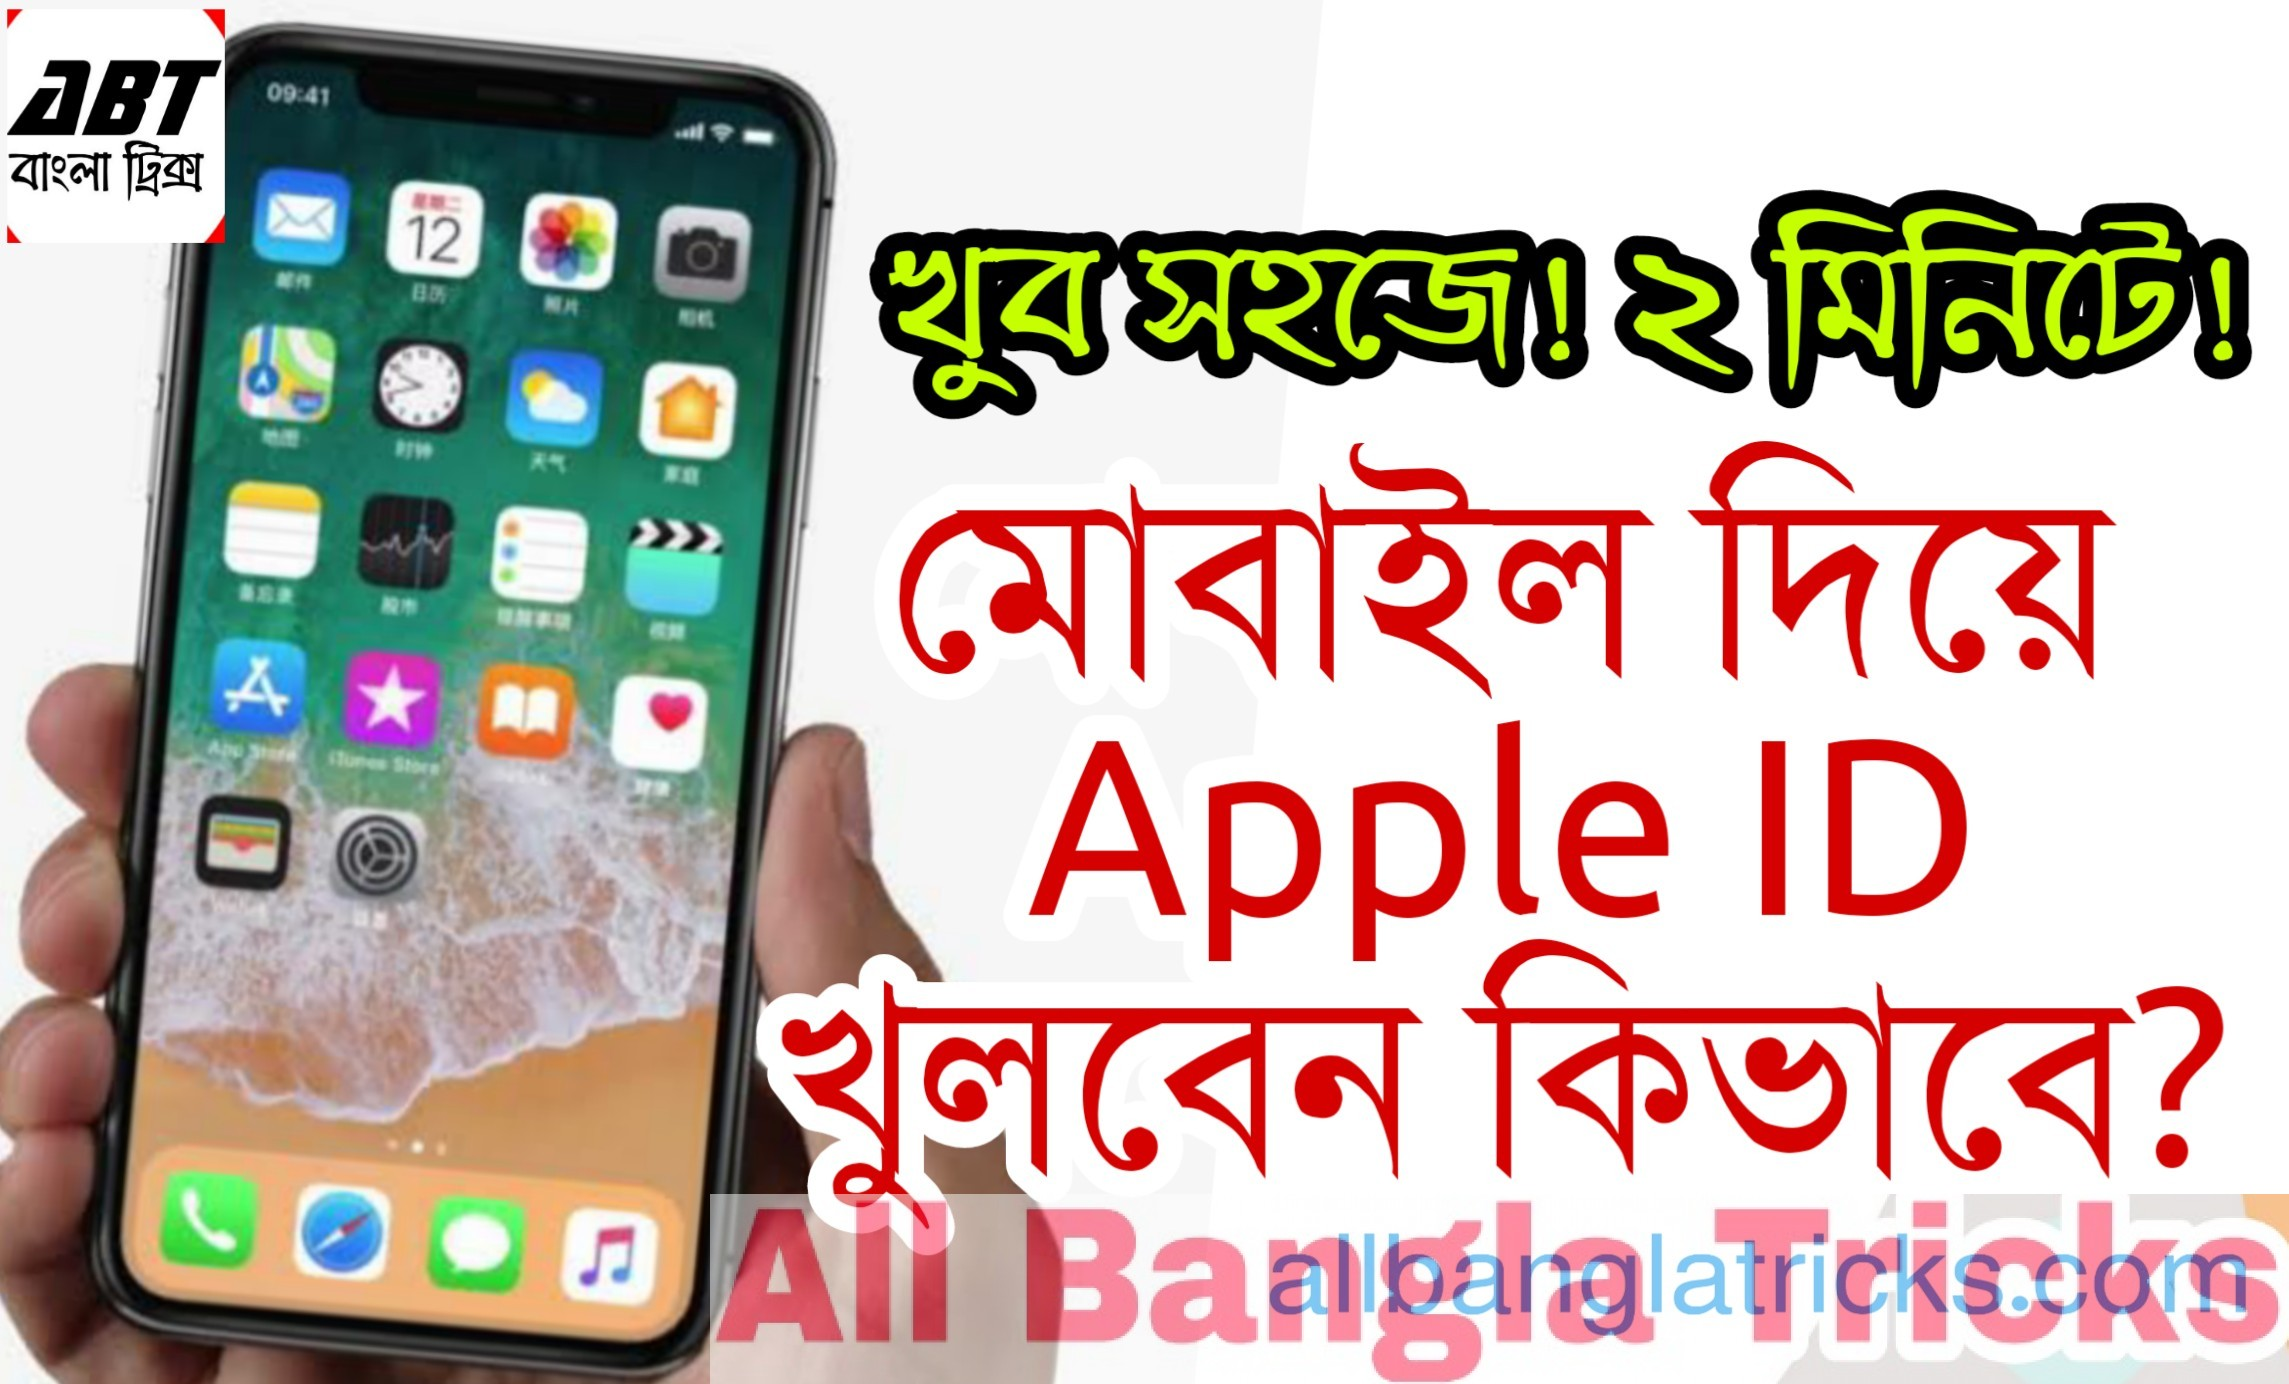 Create Apple ID from Mobile Bangla Tutorial এপেল আইডি তৈরি করুন ২ মিনিট এ - TipsNow.ml